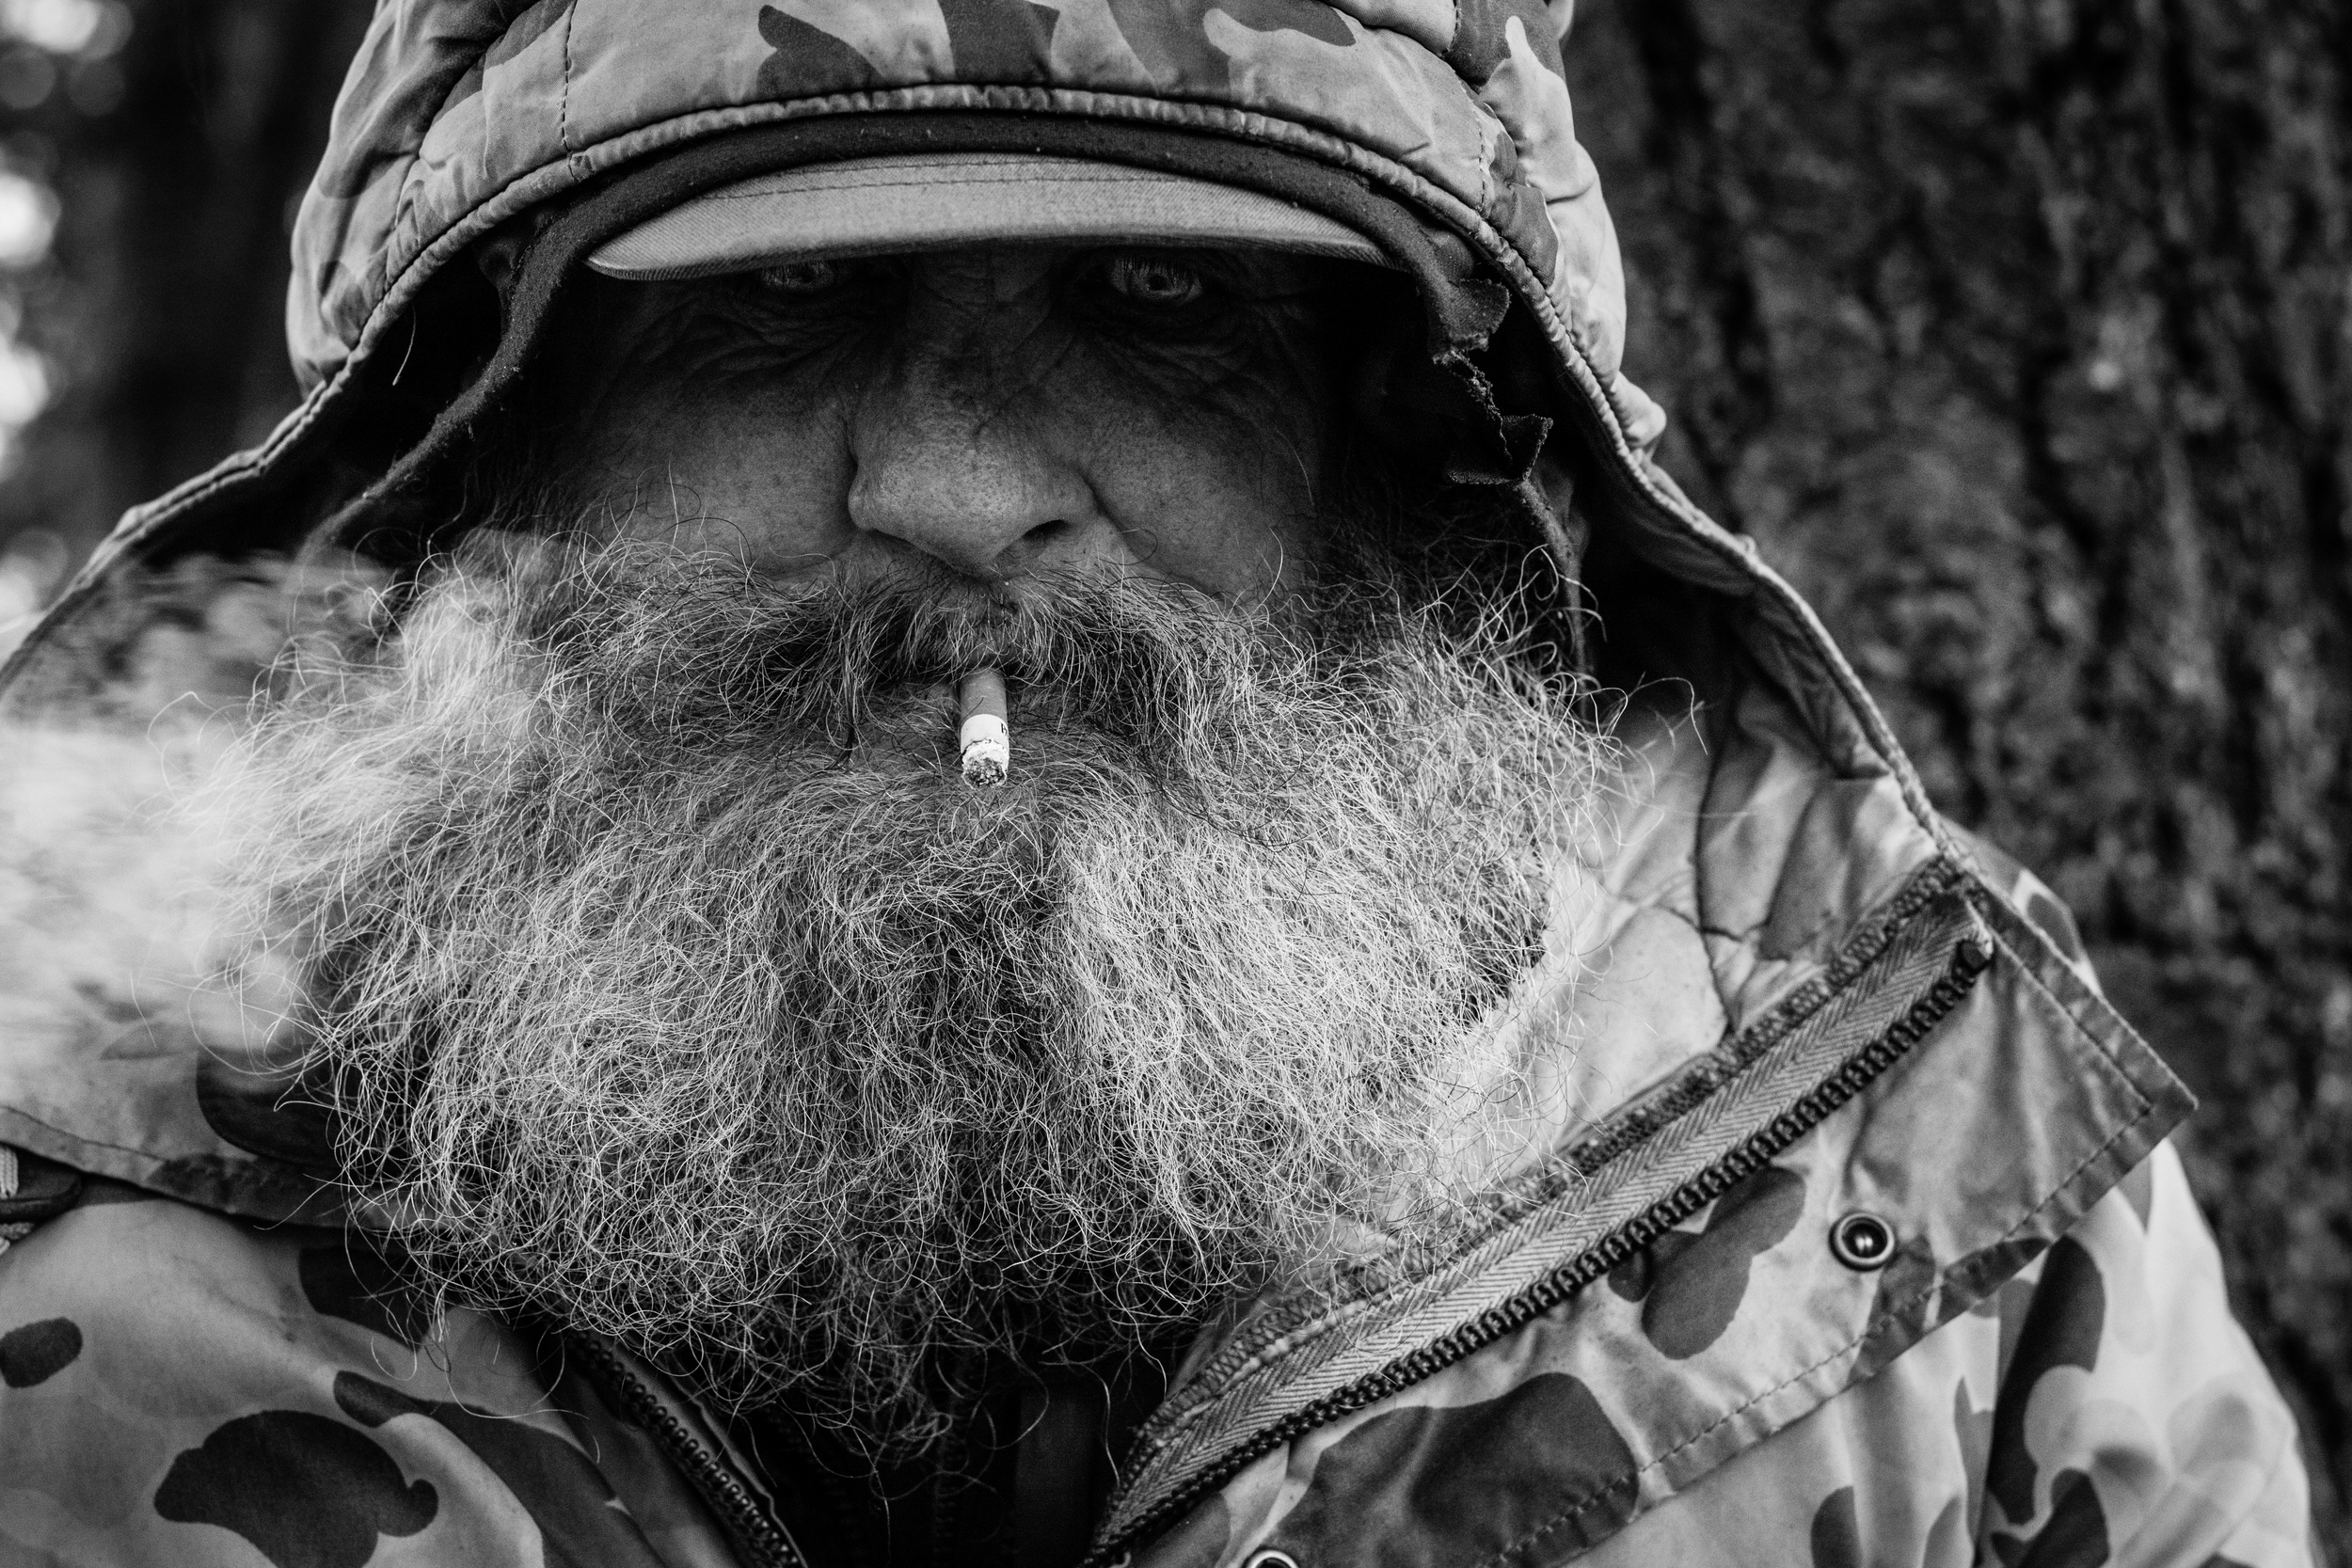 Hope for the homeless - wes fisher photography - portrait project - hooded eyes smoking beard.jpg